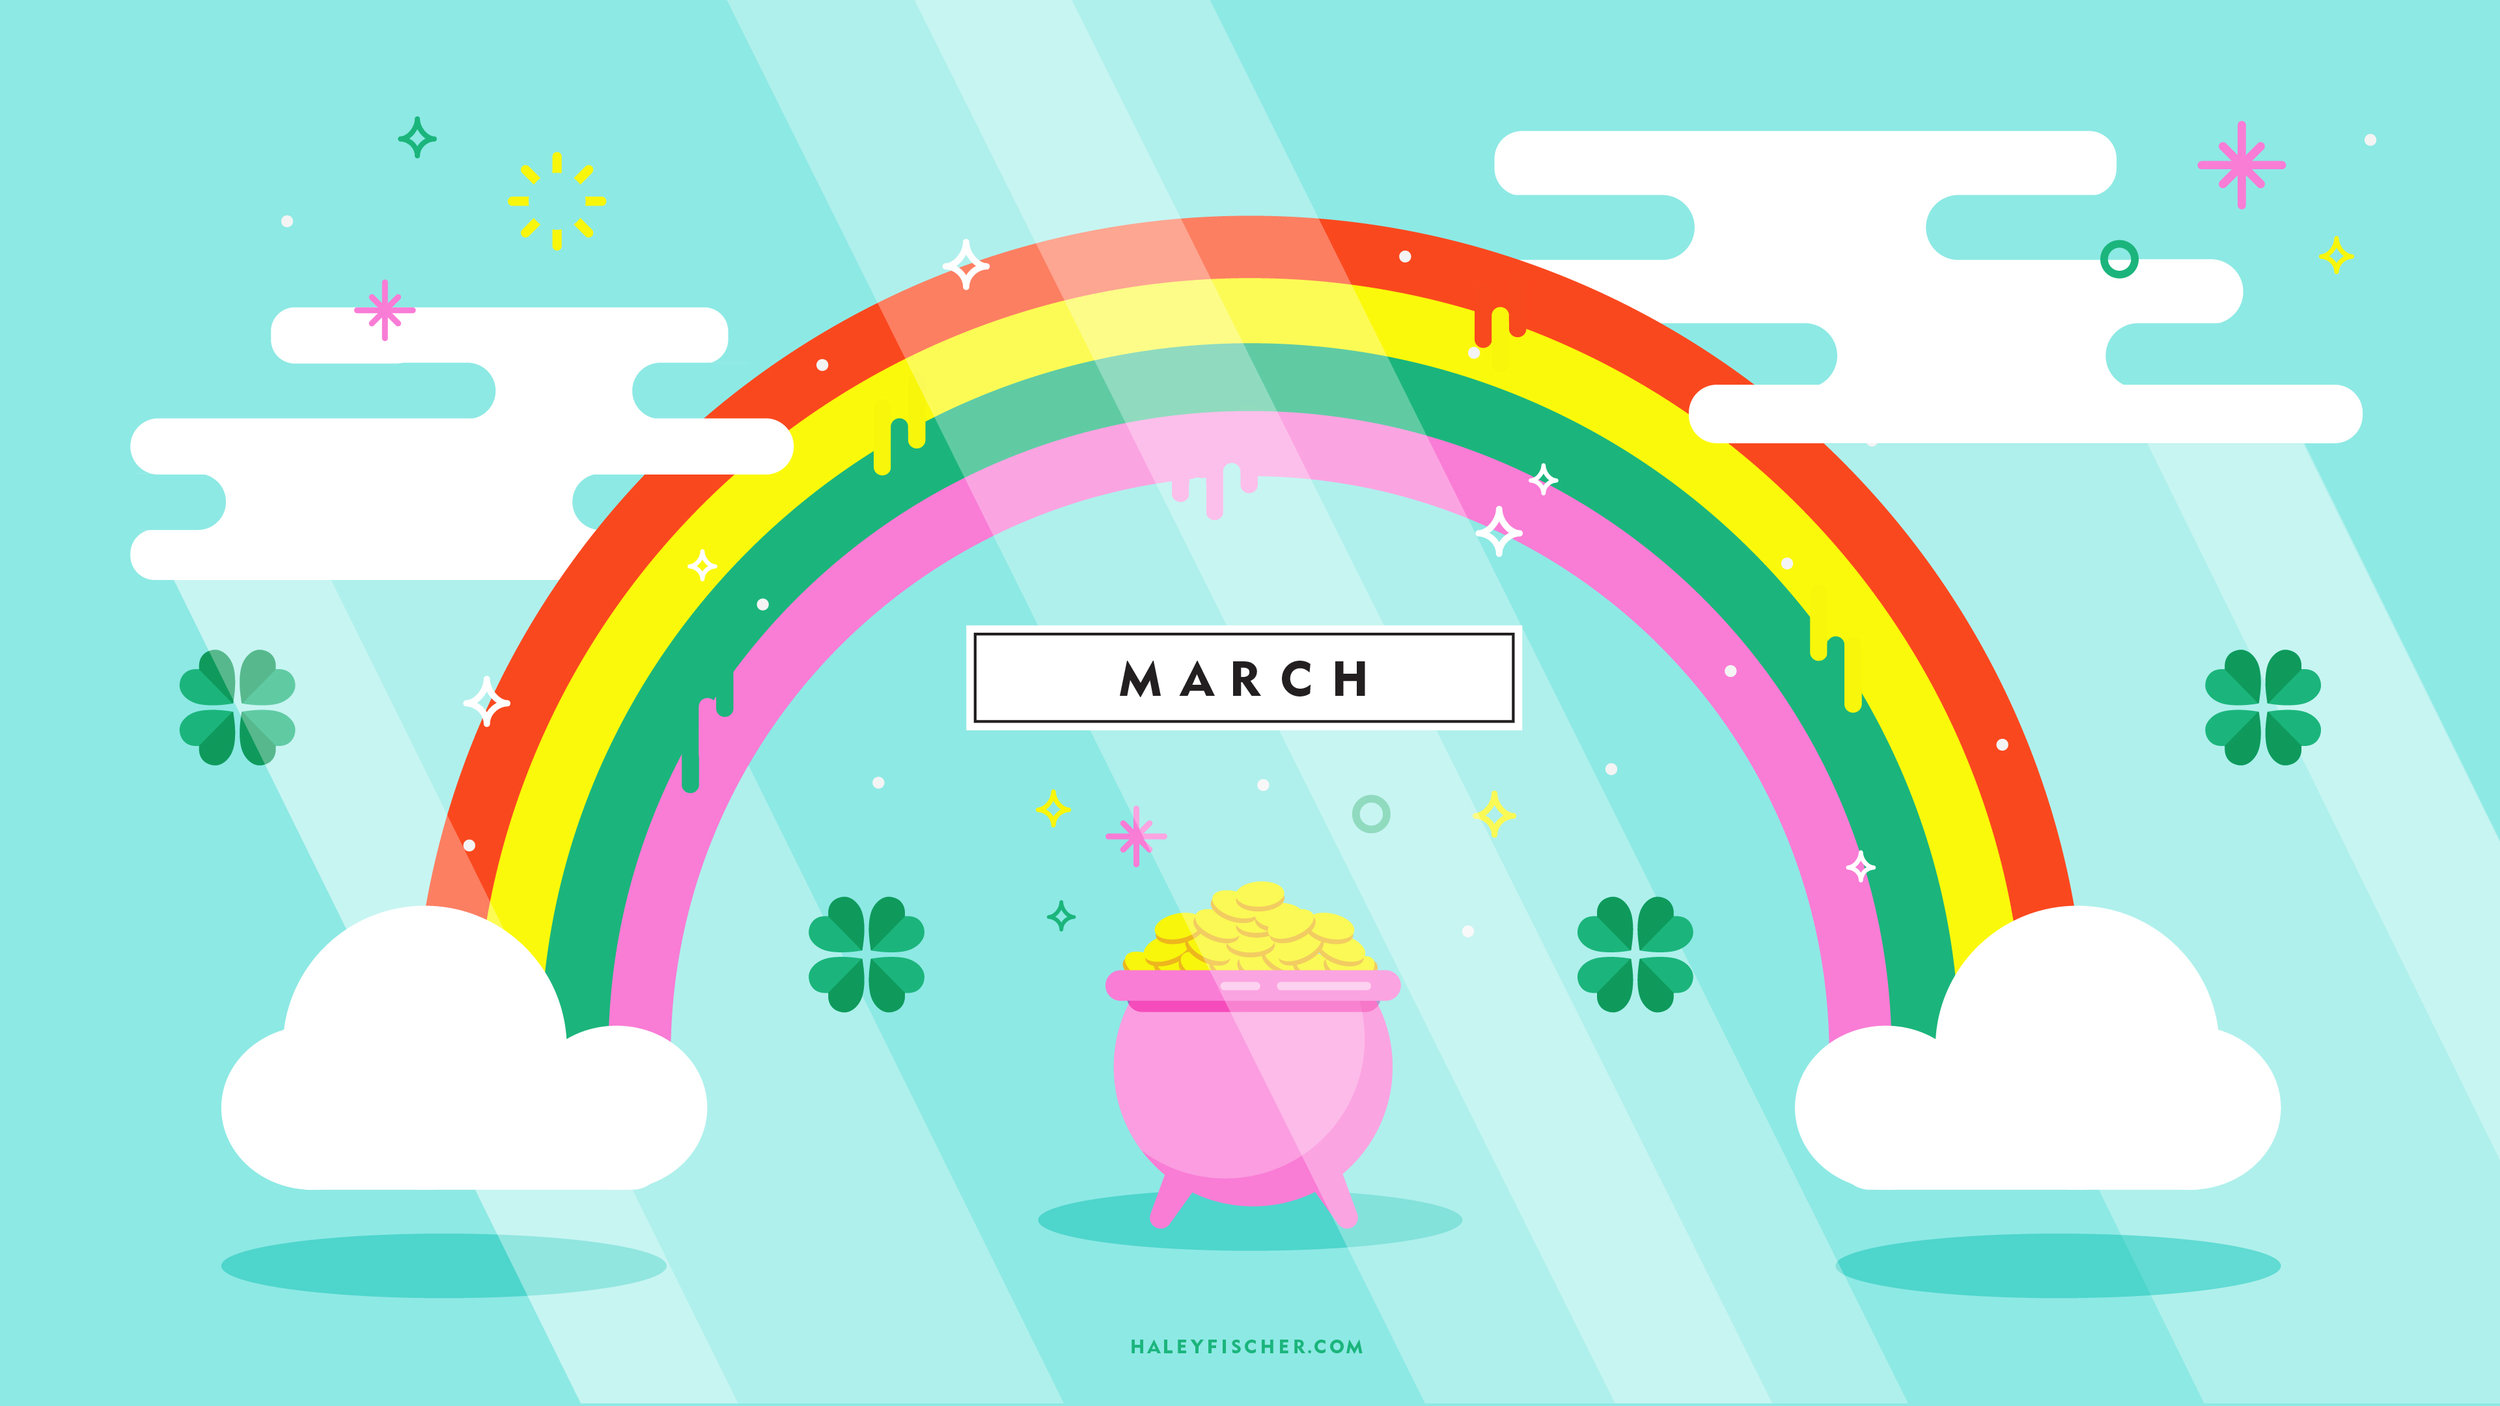 Download March Wallpaper Here